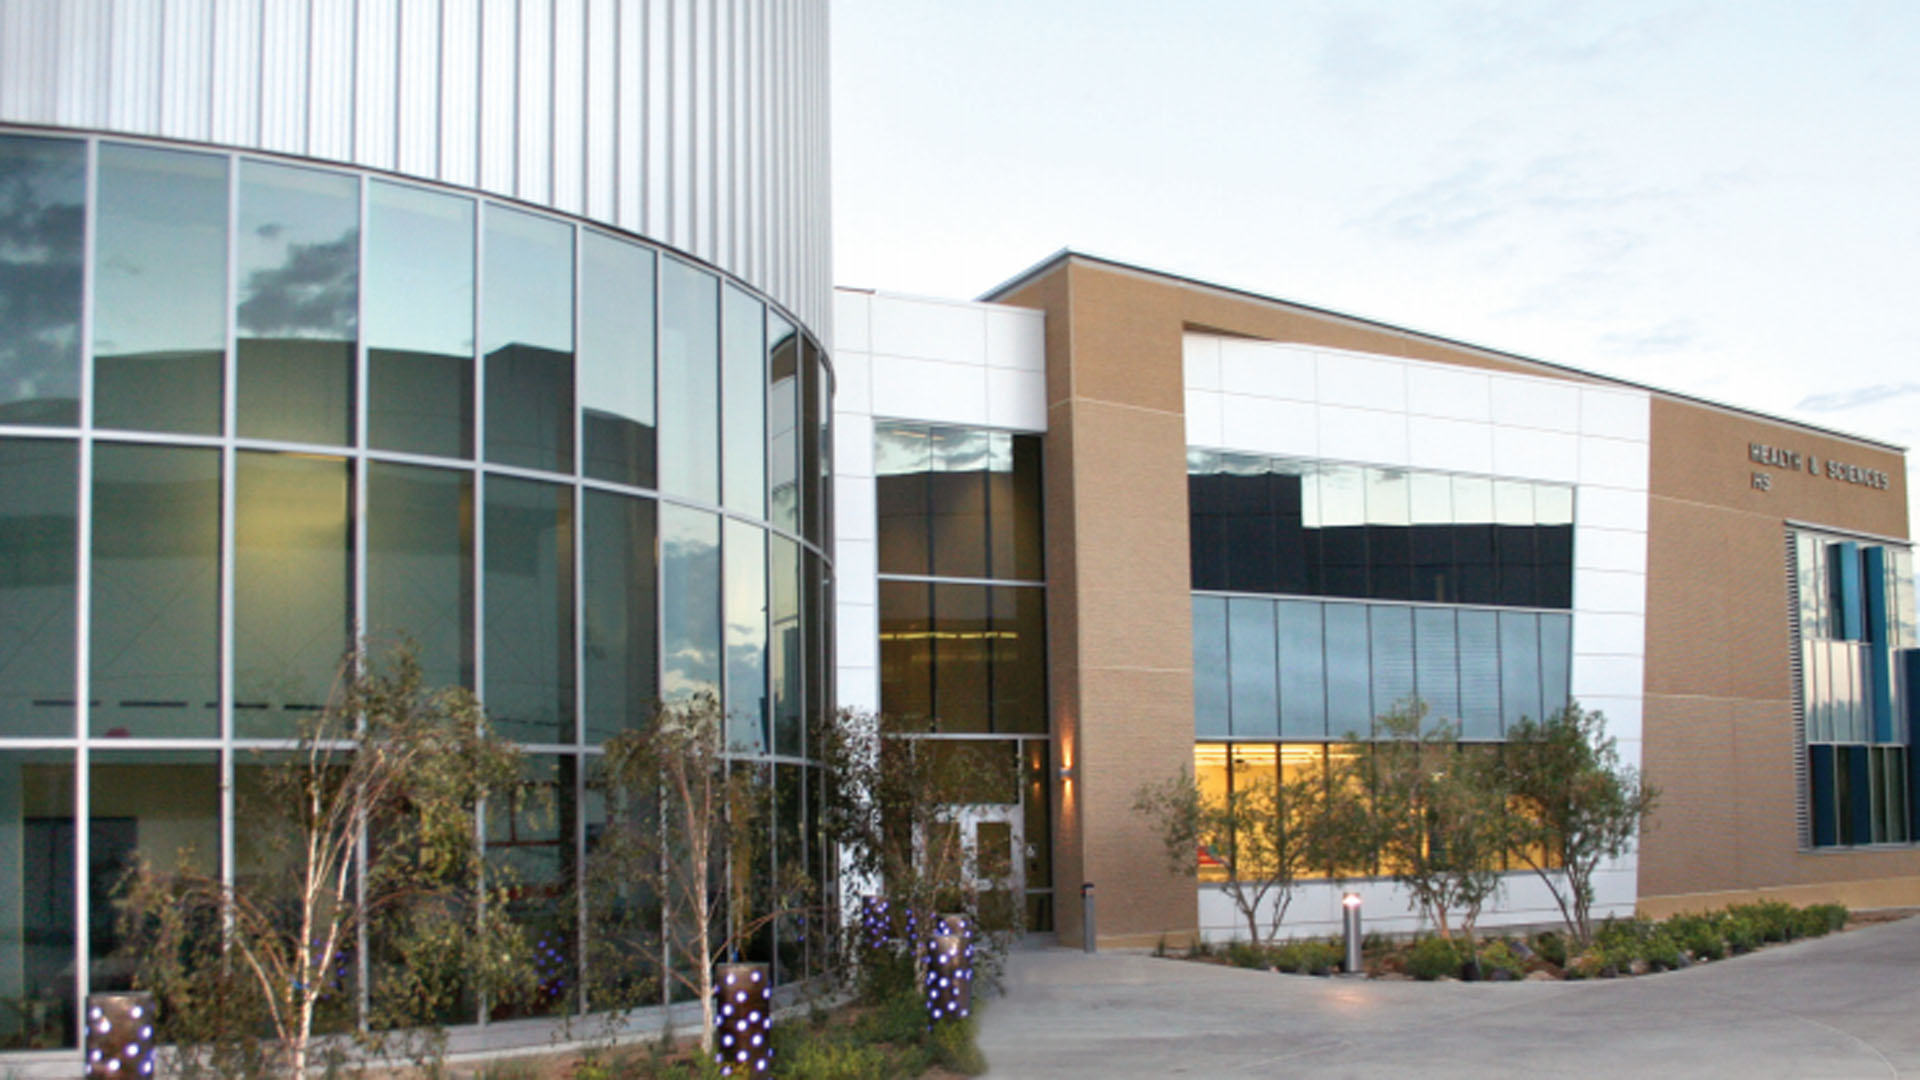 The Antelope Valley College campus is seen in this undated file photo from the school's 2013-2014 catalog. (Credit: AVC)